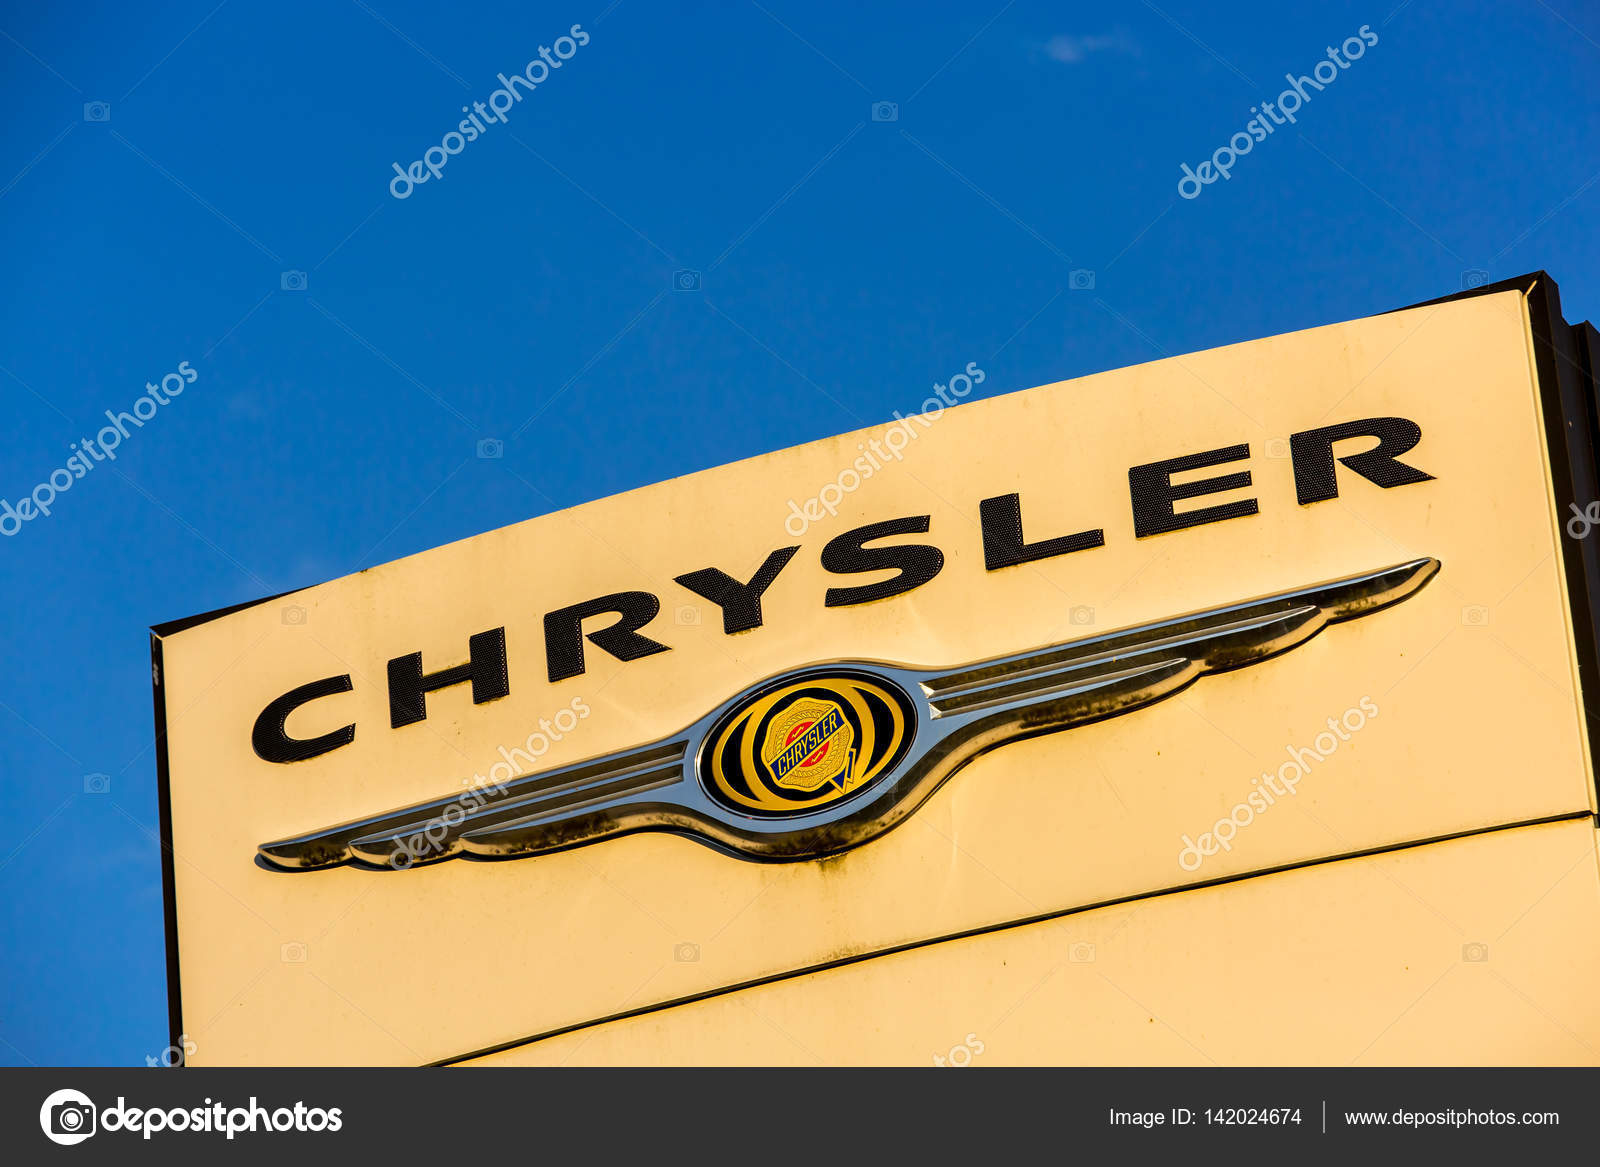 La rochelle france august 30 2016 official dealership sign of la rochelle france august 30 2016 official dealership sign of chrysler against biocorpaavc Choice Image